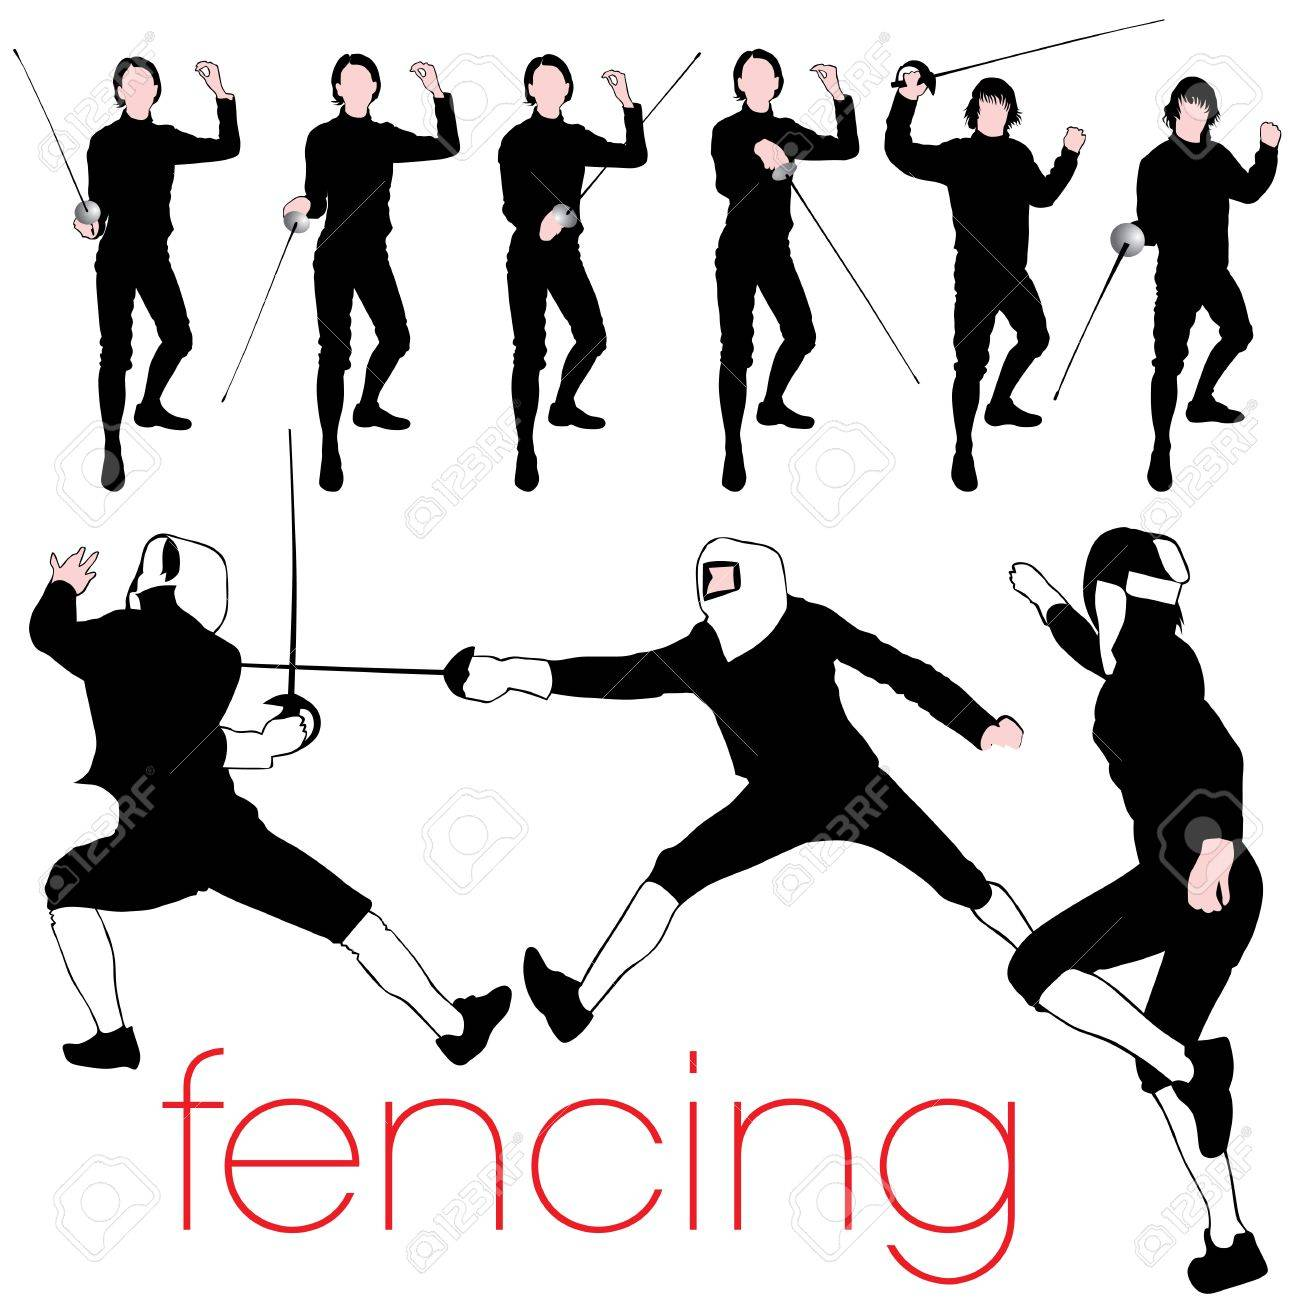 Fencing Silhouettes Set Stock Vector - 10874455